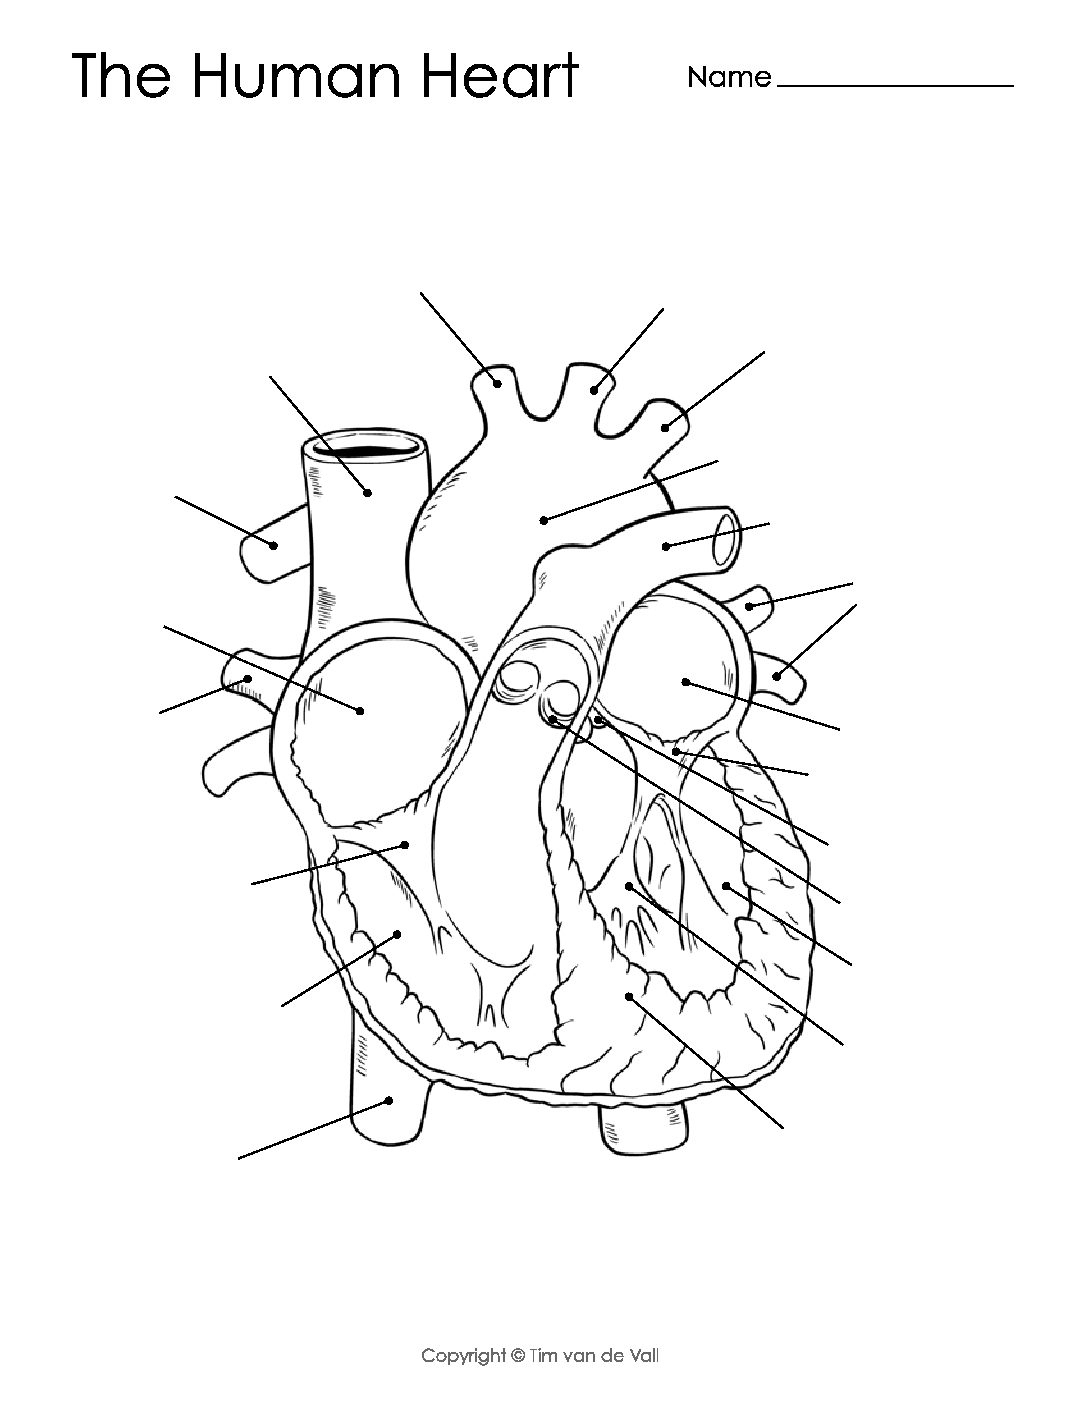 Health Archives - Tim's Printables | Heart Diagram Printable Worksheet